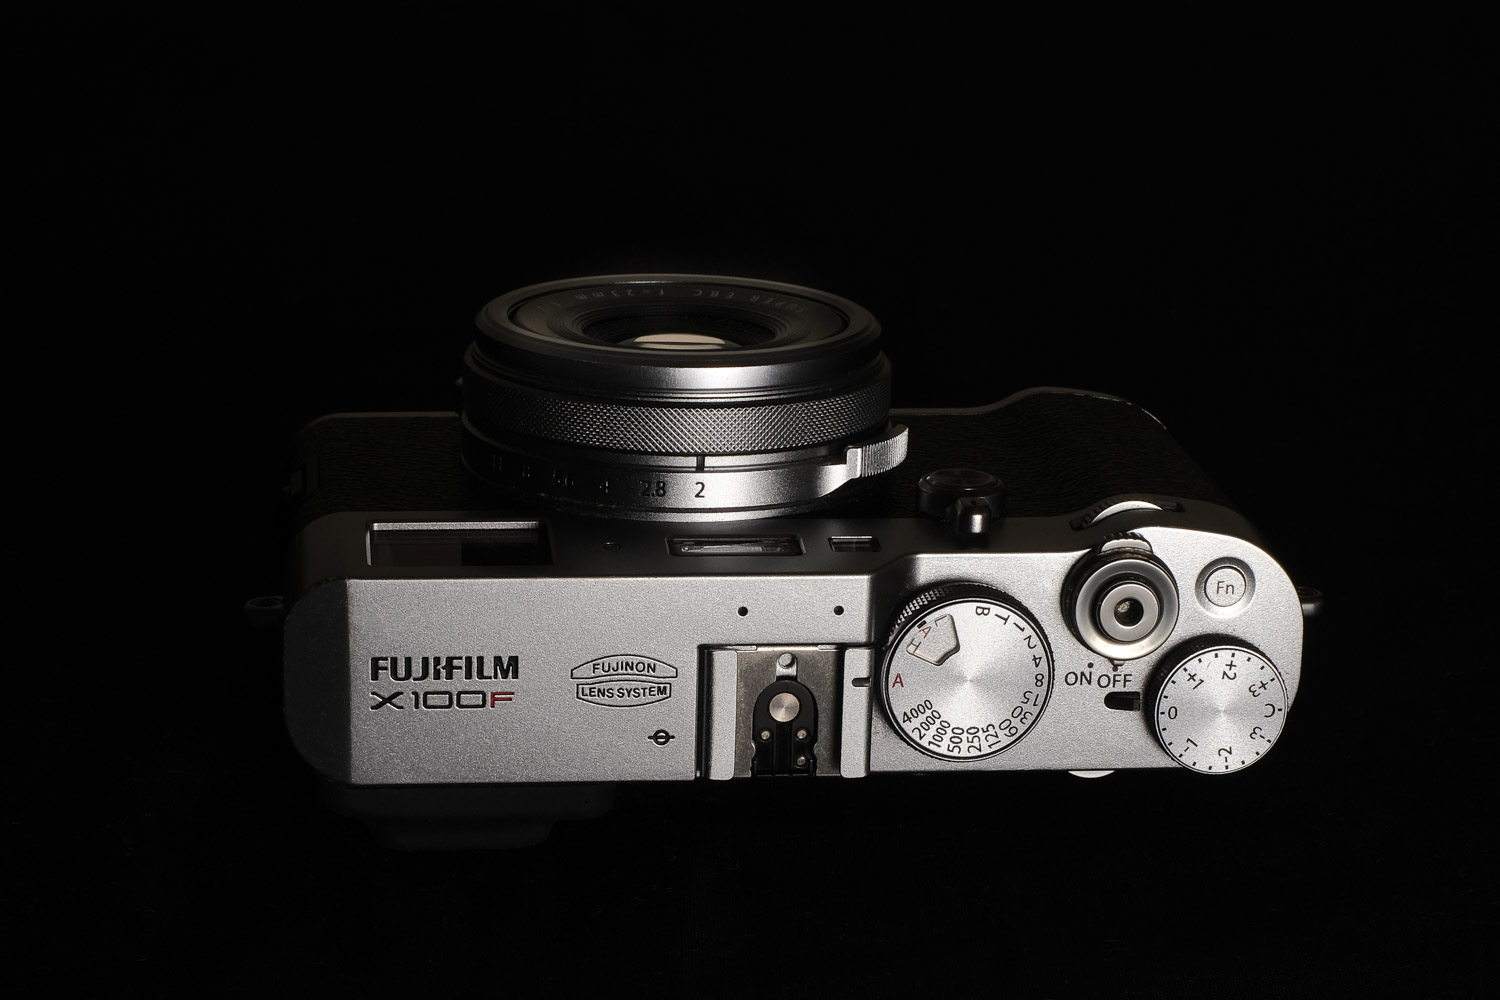 The Fujifilm X100F camera